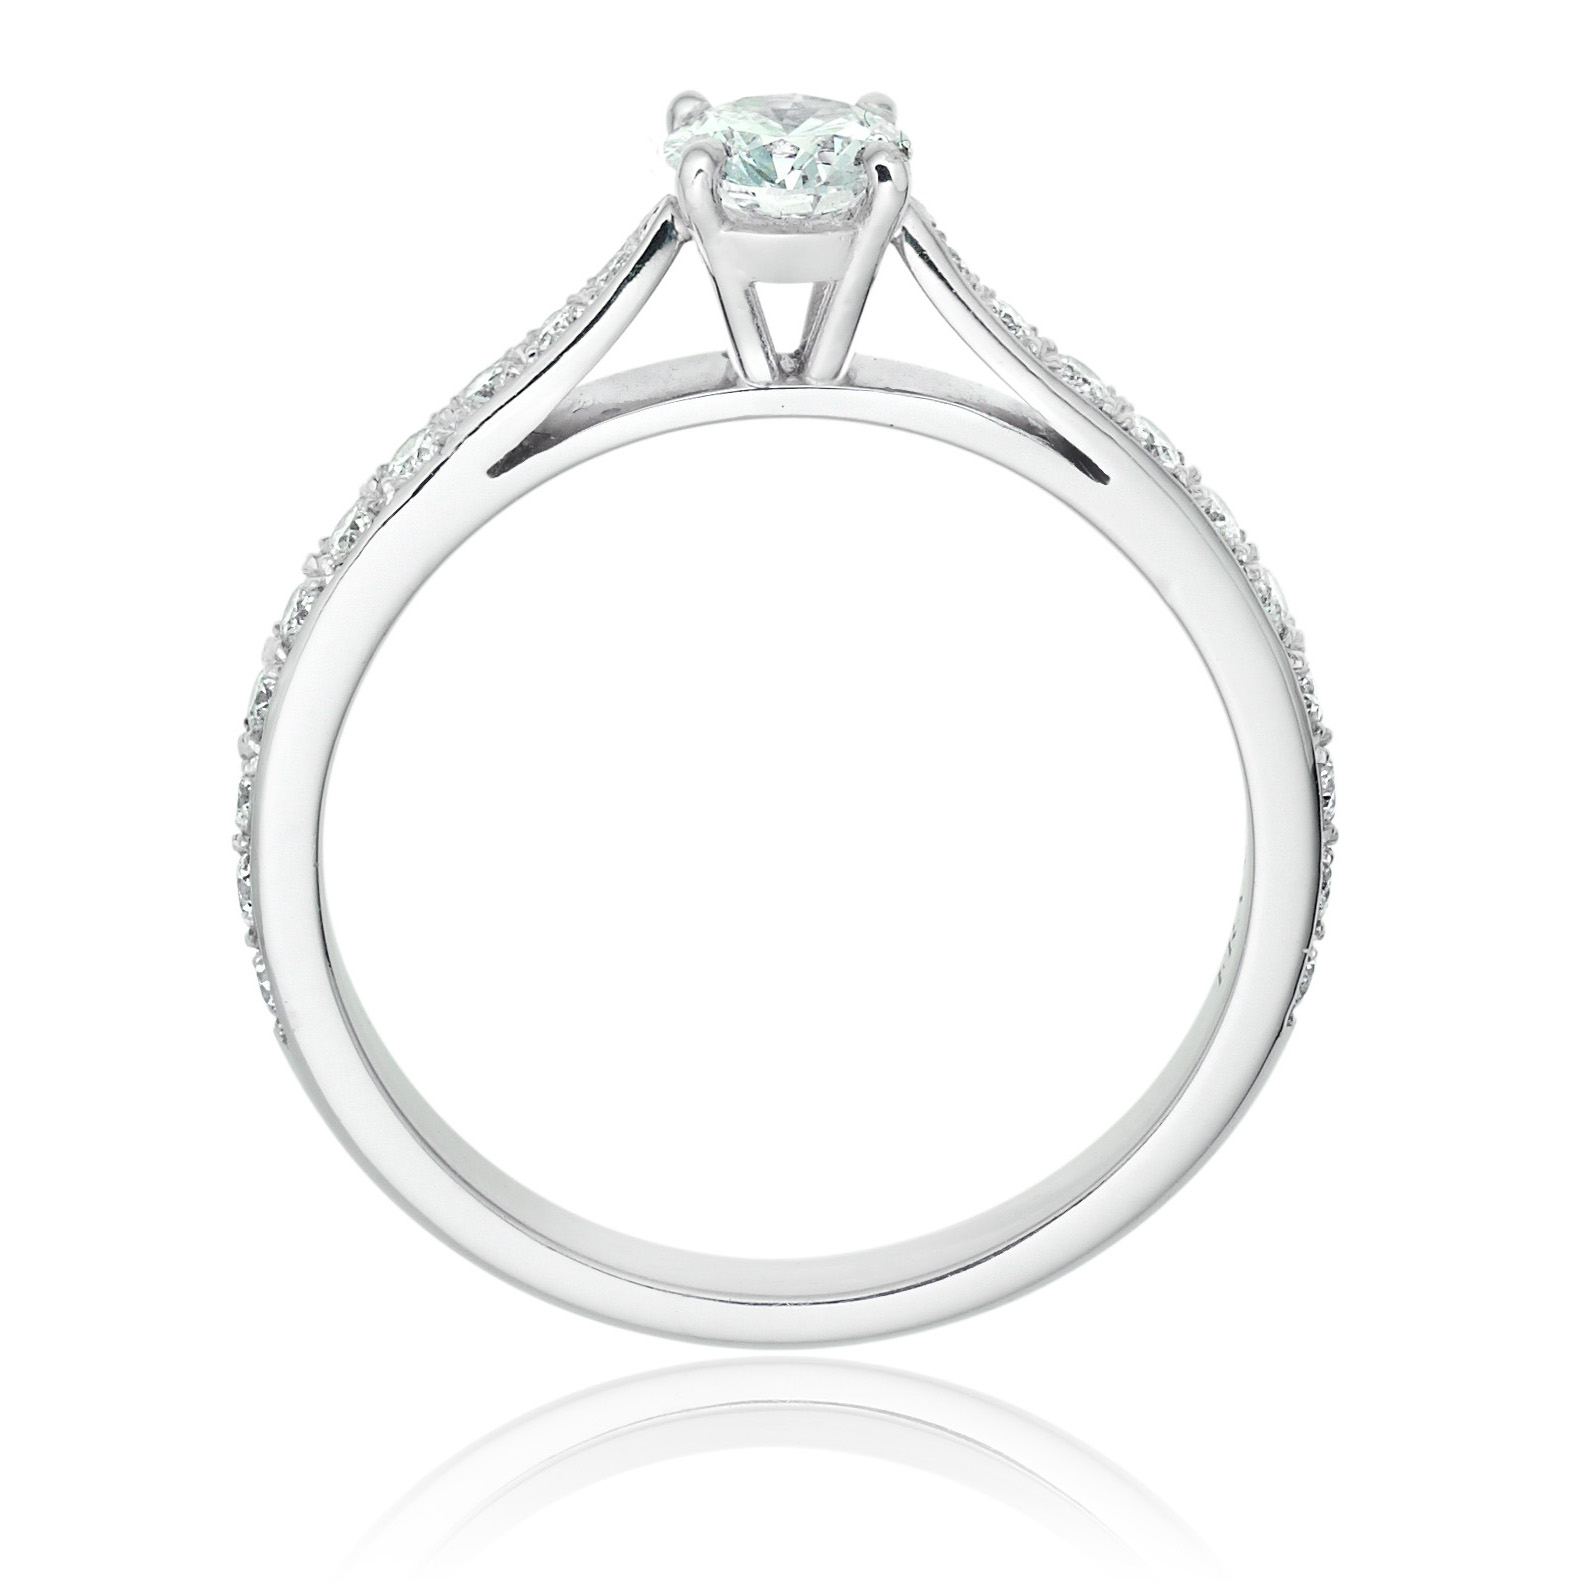 Diamond engagement ring - LA355